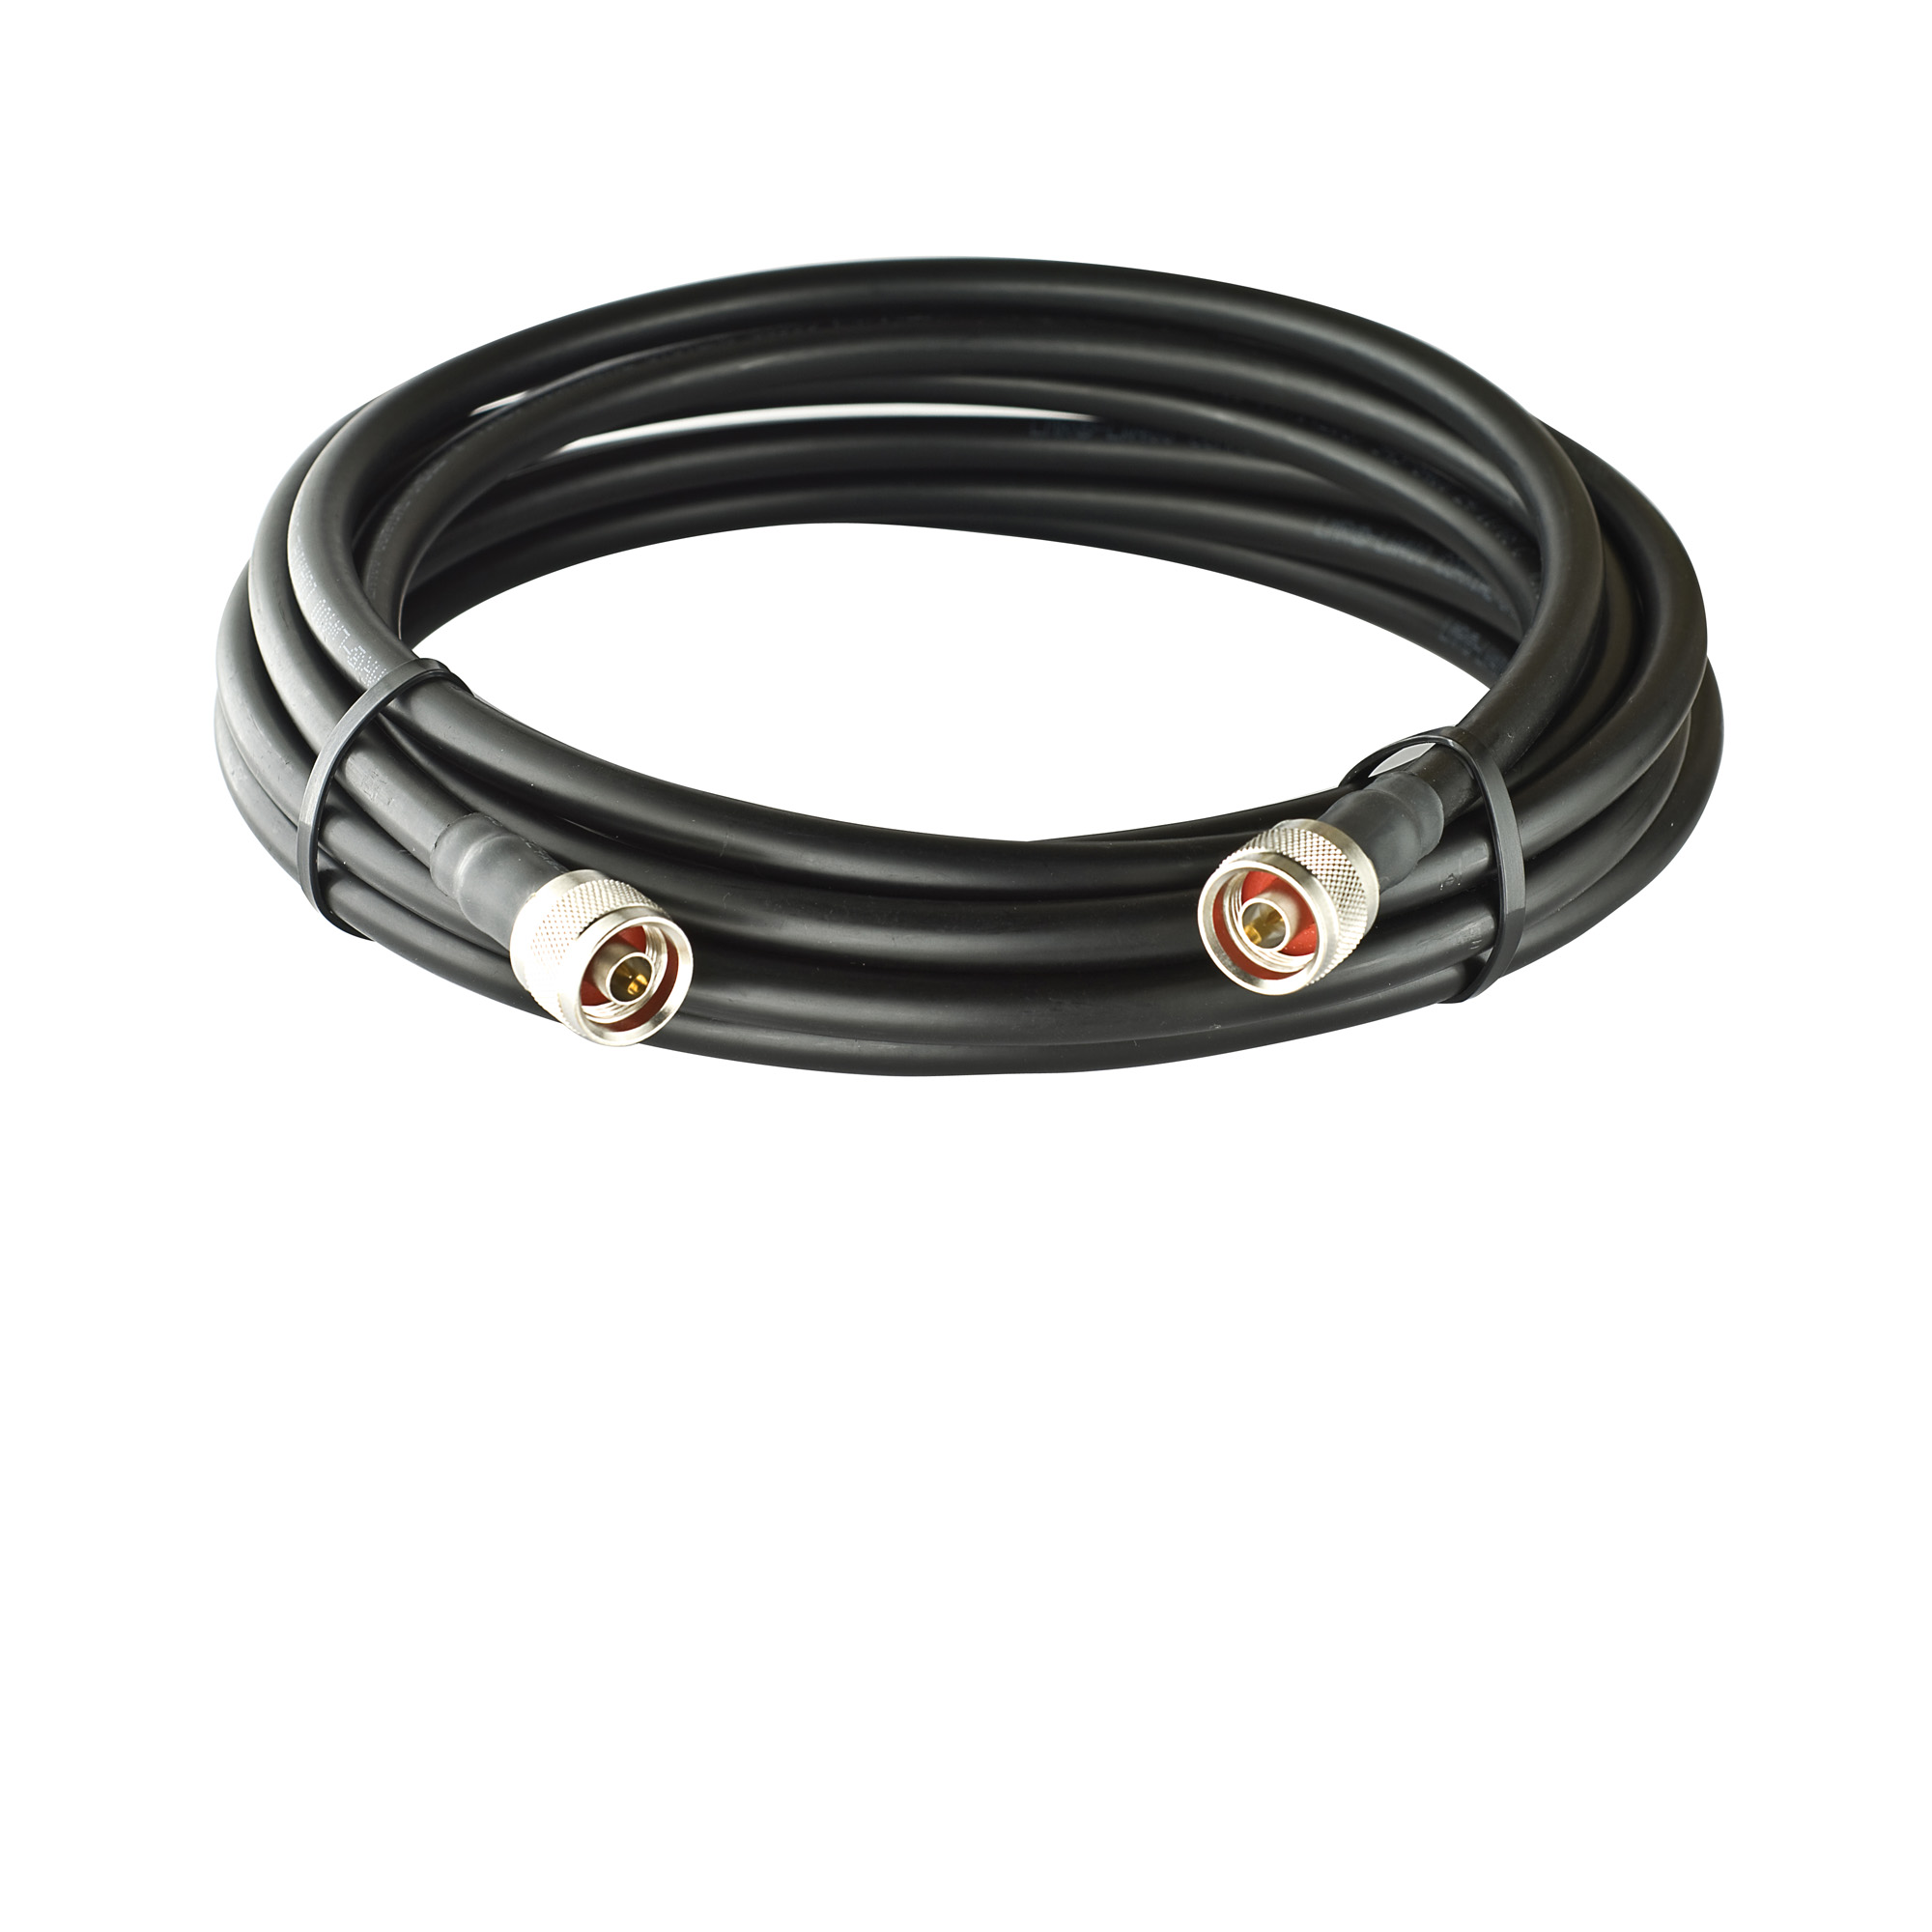 MOXA A-CRF-NMNM-LL4-300 Wireless Cable Male 3M